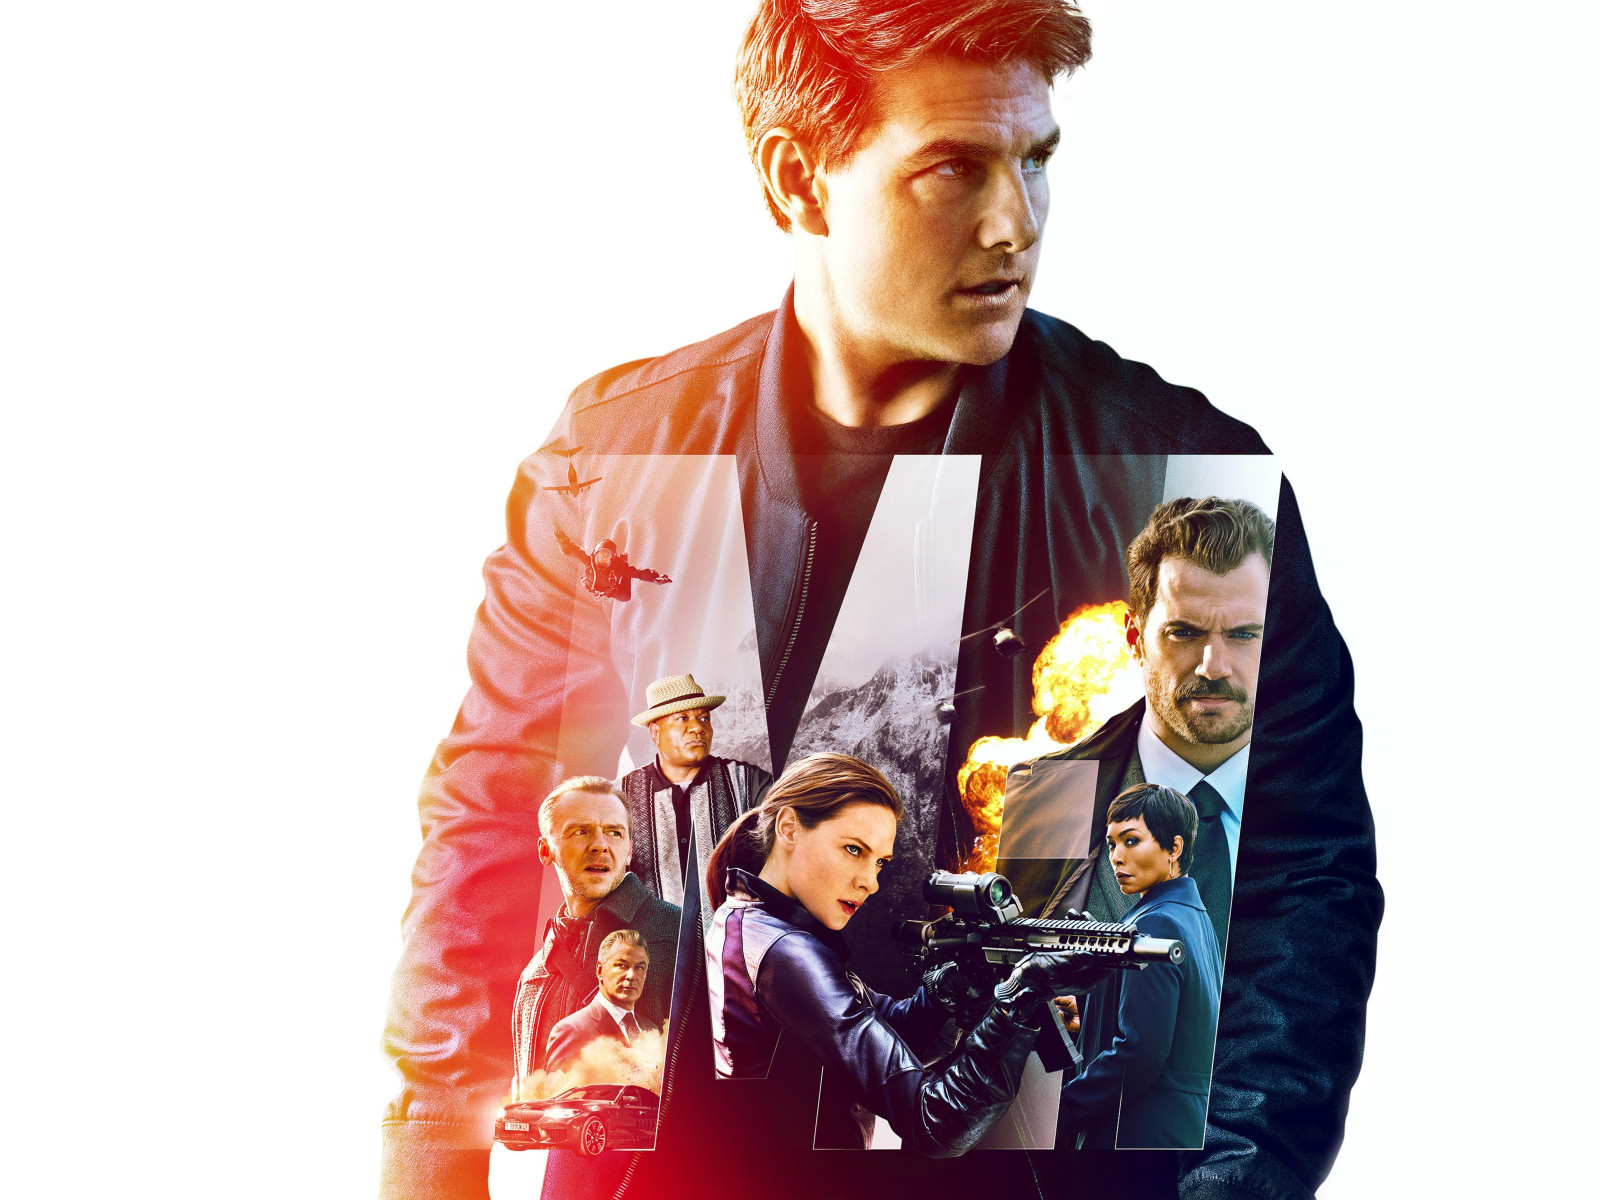 Mission: Impossible Fallout | 1600x1200 wallpaper